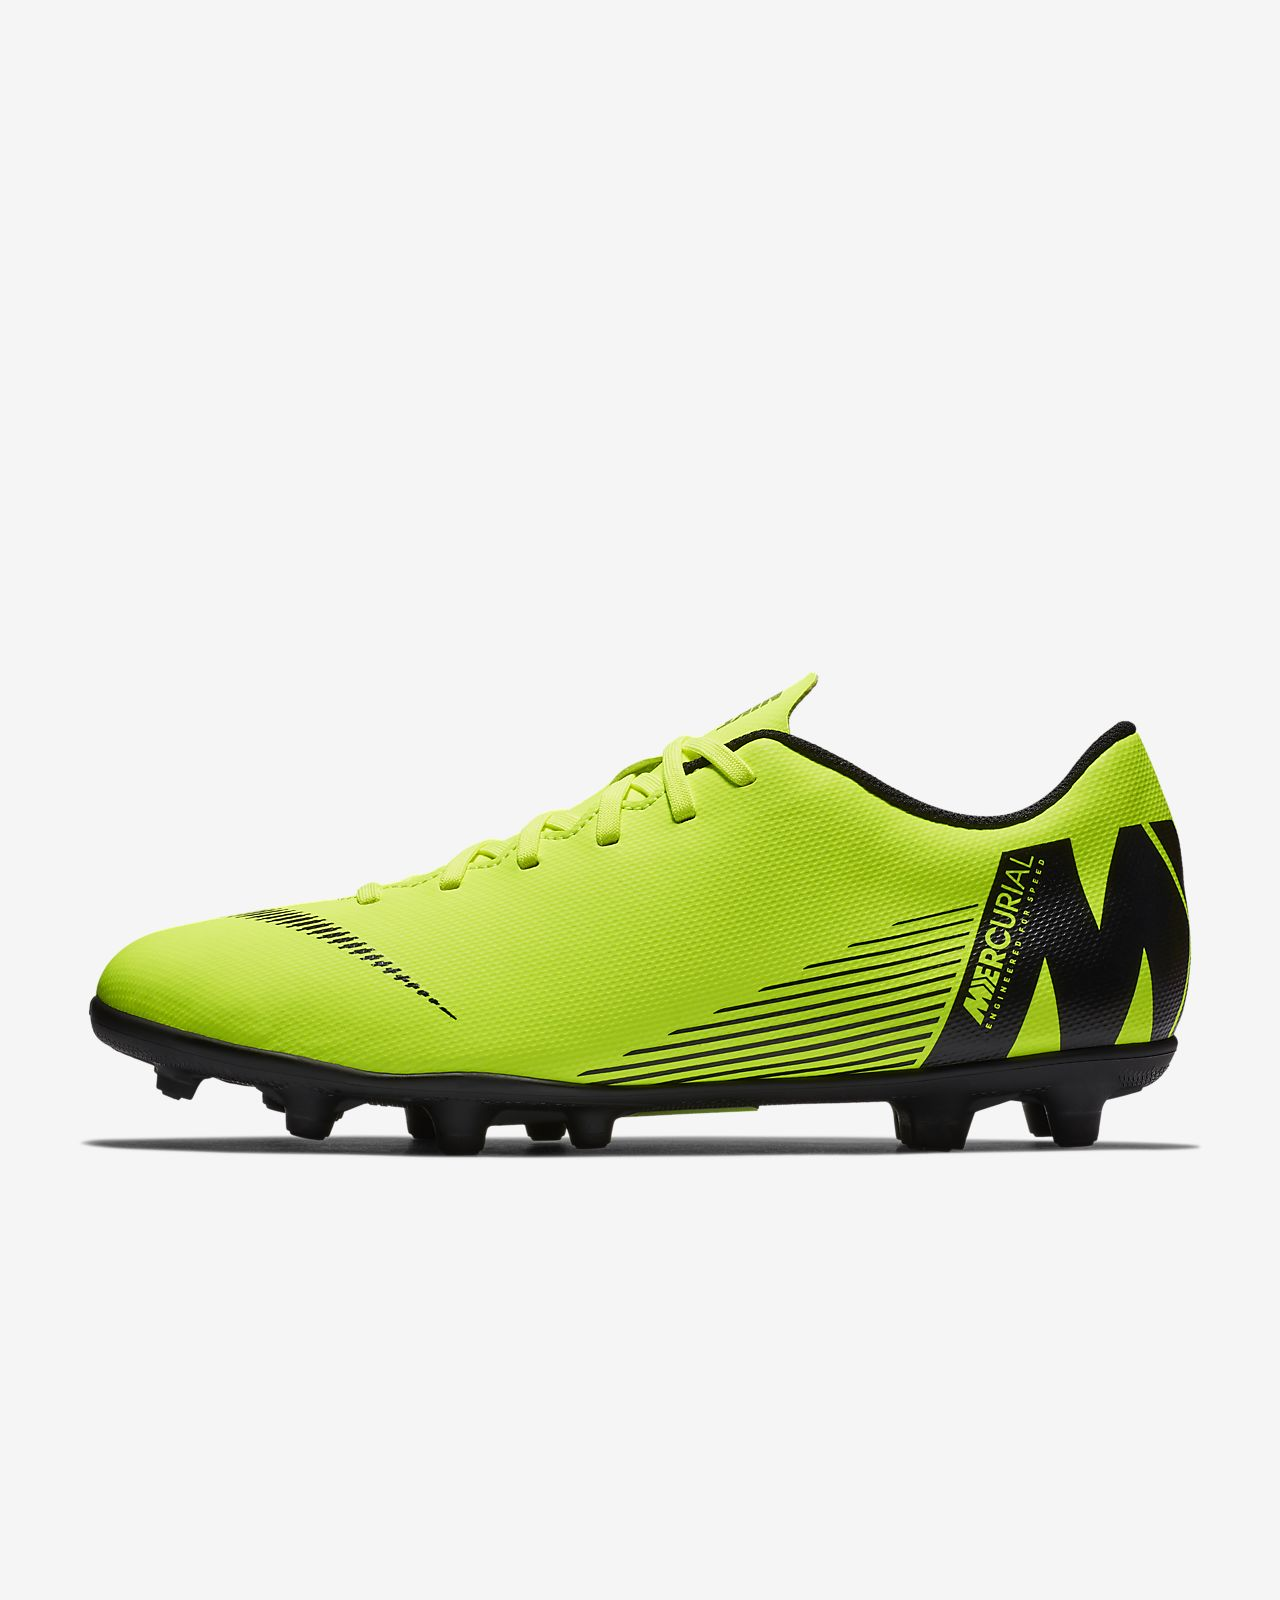 quality design f897a fe312 ... Nike Mercurial Vapor XII Club Multi-Ground Soccer Cleat